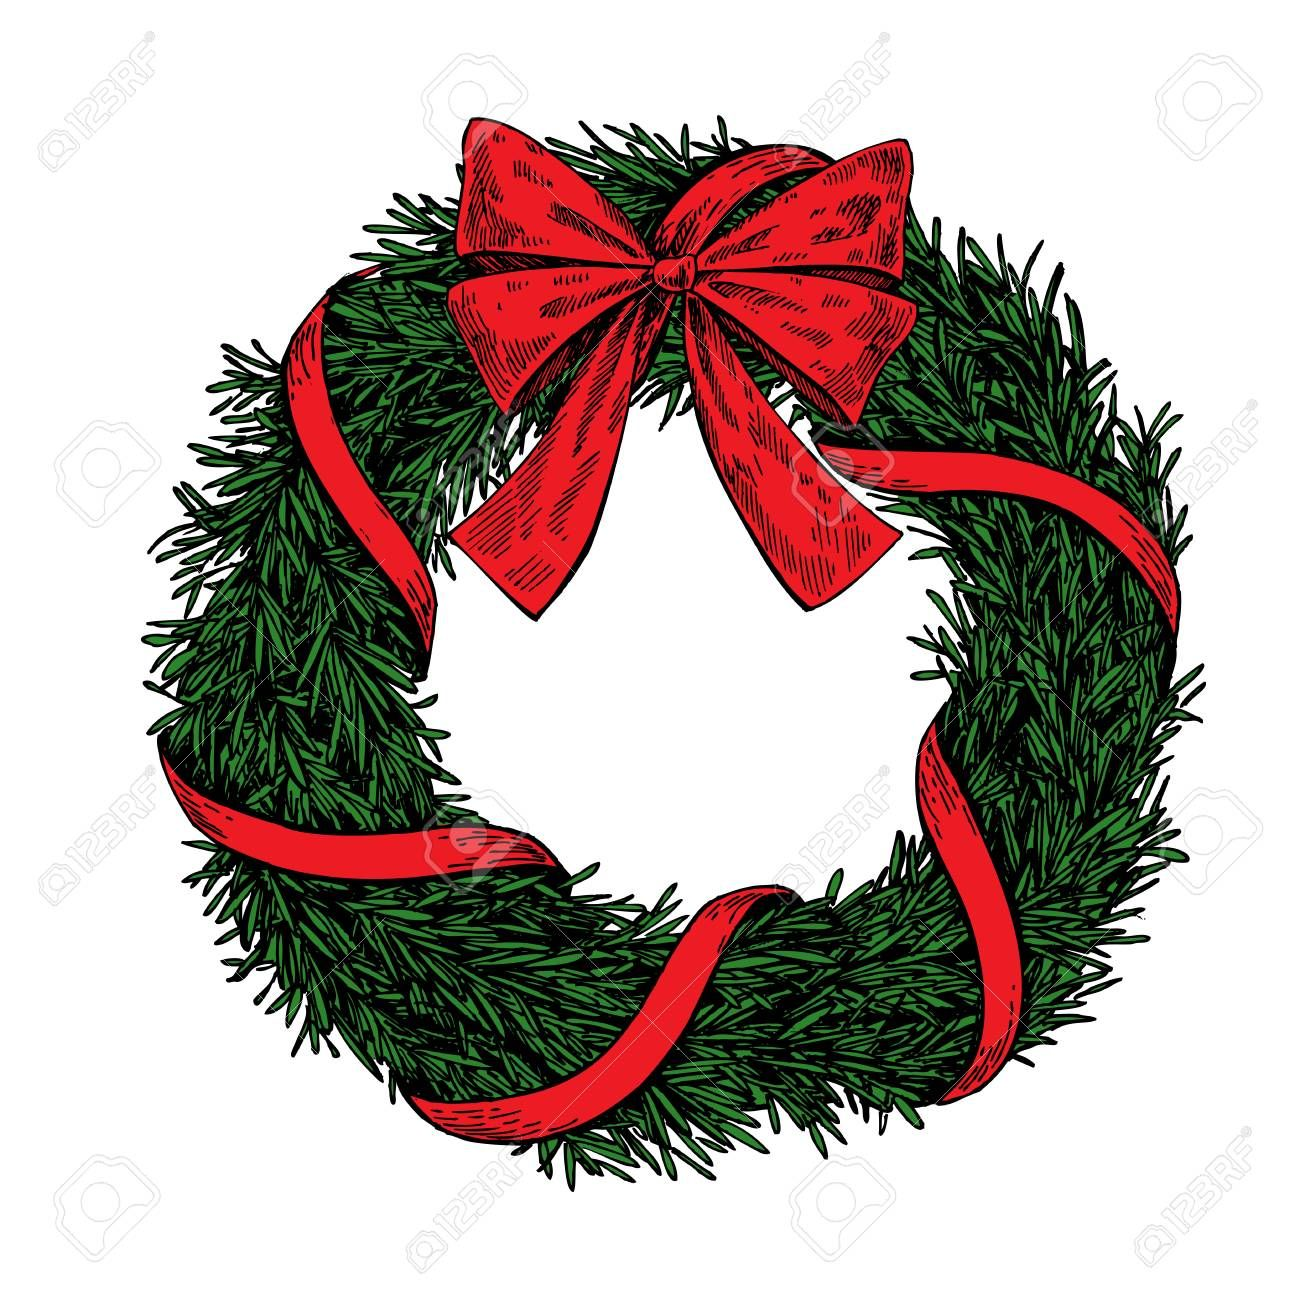 Christmas Wreath Vector Hand Drawn Christmas Wreath Illustration Wreath Illustration Wreath Drawing